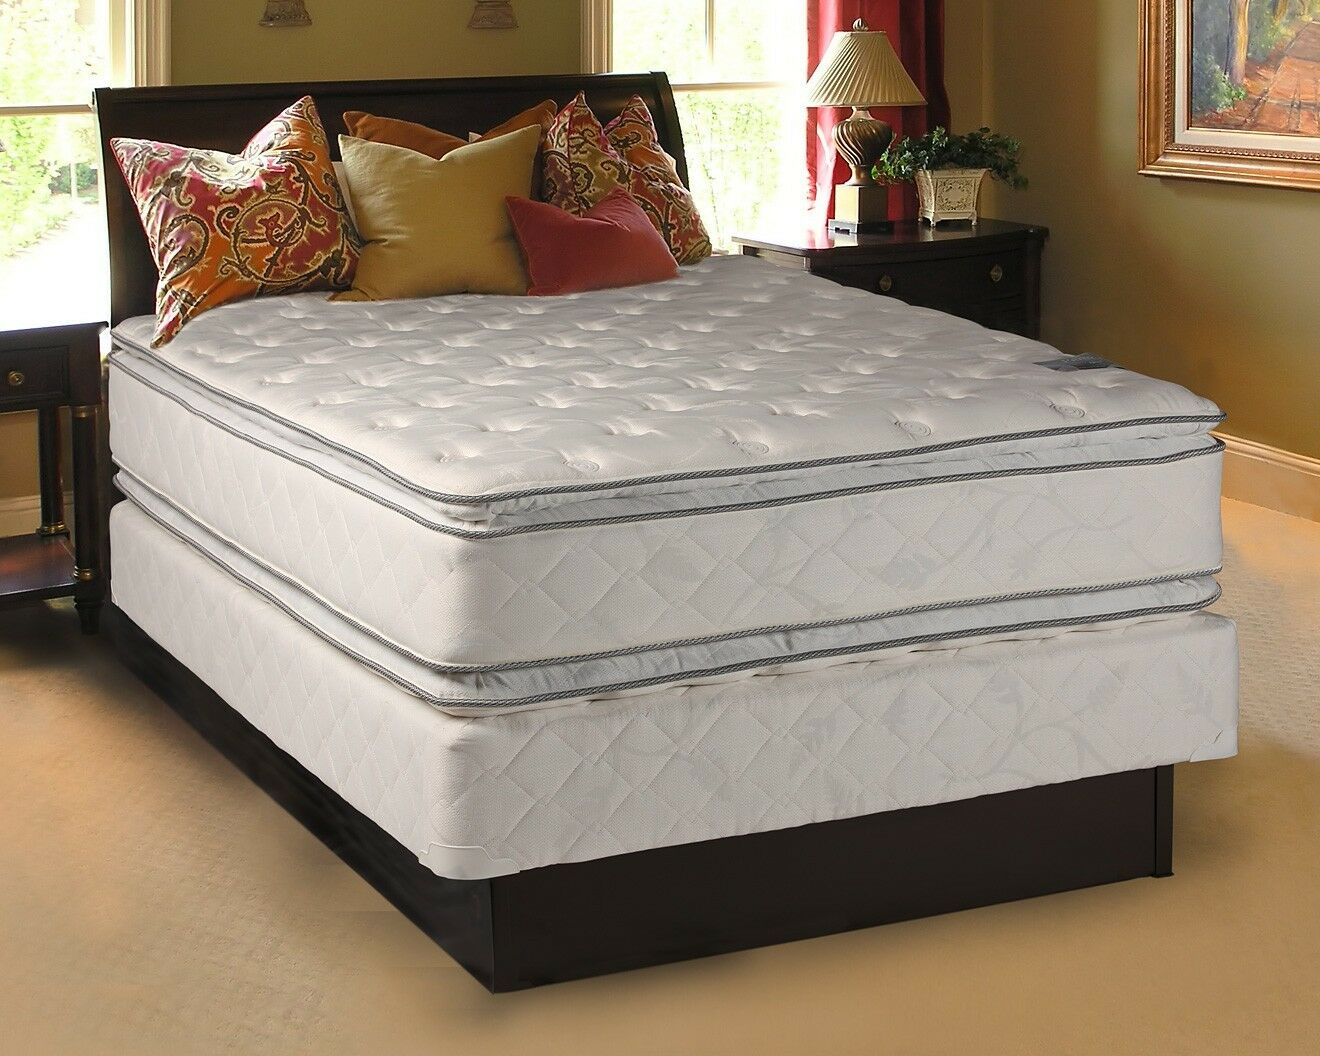 queen mattress and boxspring set. Black Bedroom Furniture Sets. Home Design Ideas